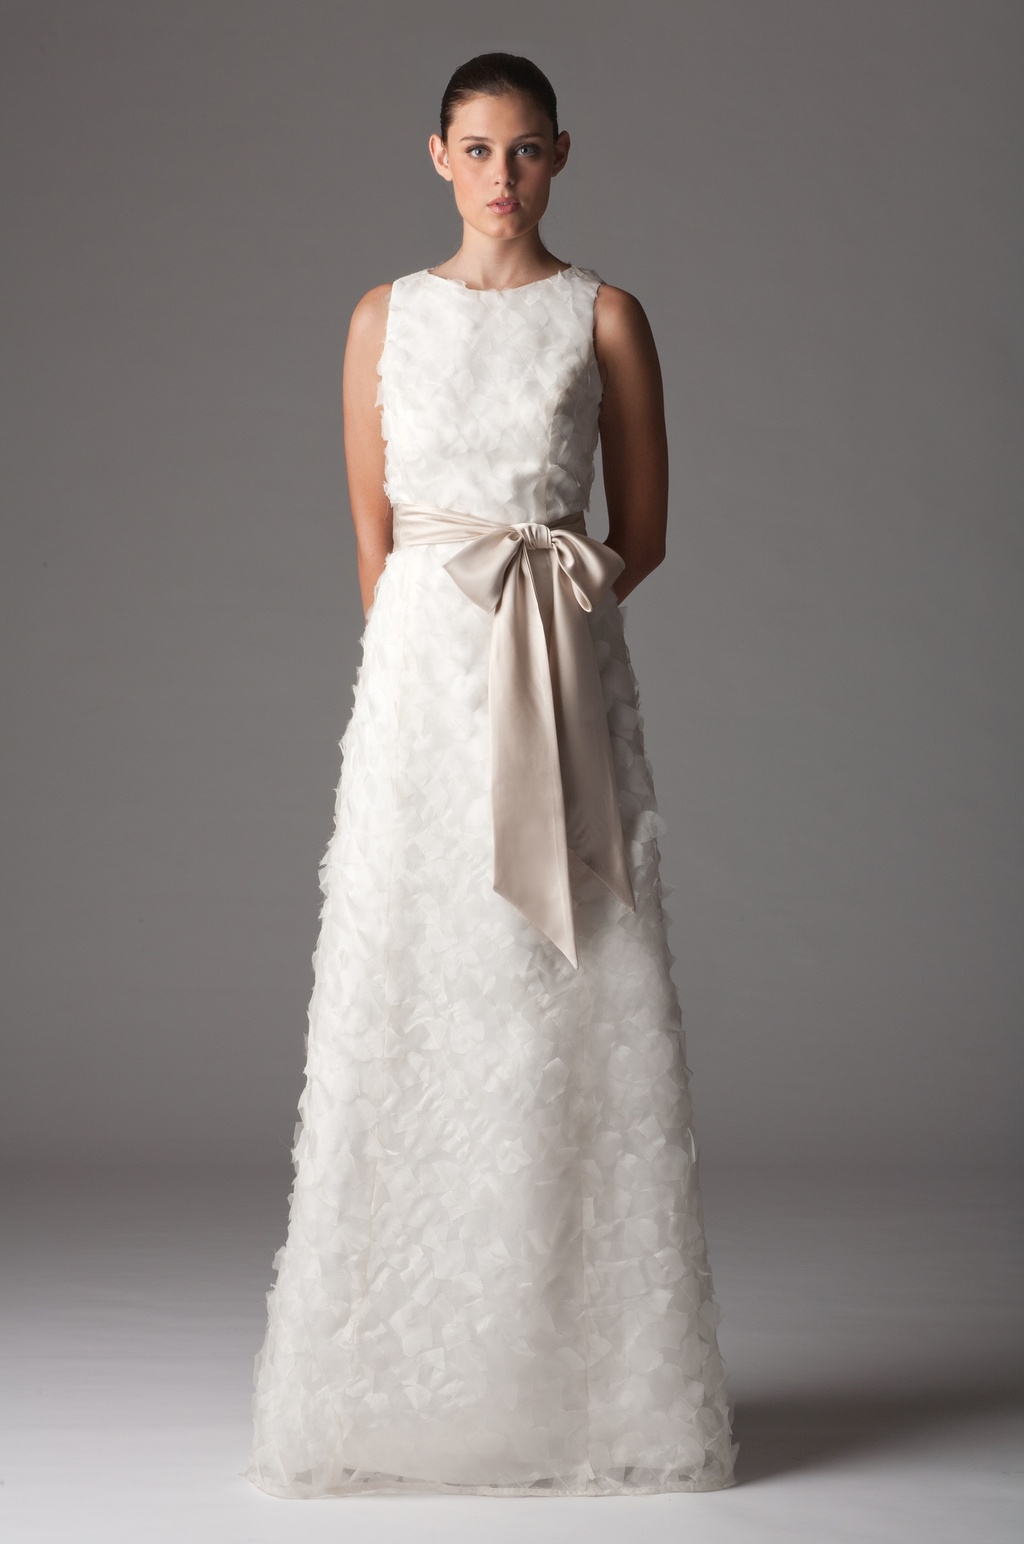 Aria-wedding-dresses-2012-bridal-gowns-high-neck-modified-a-line-sash.full